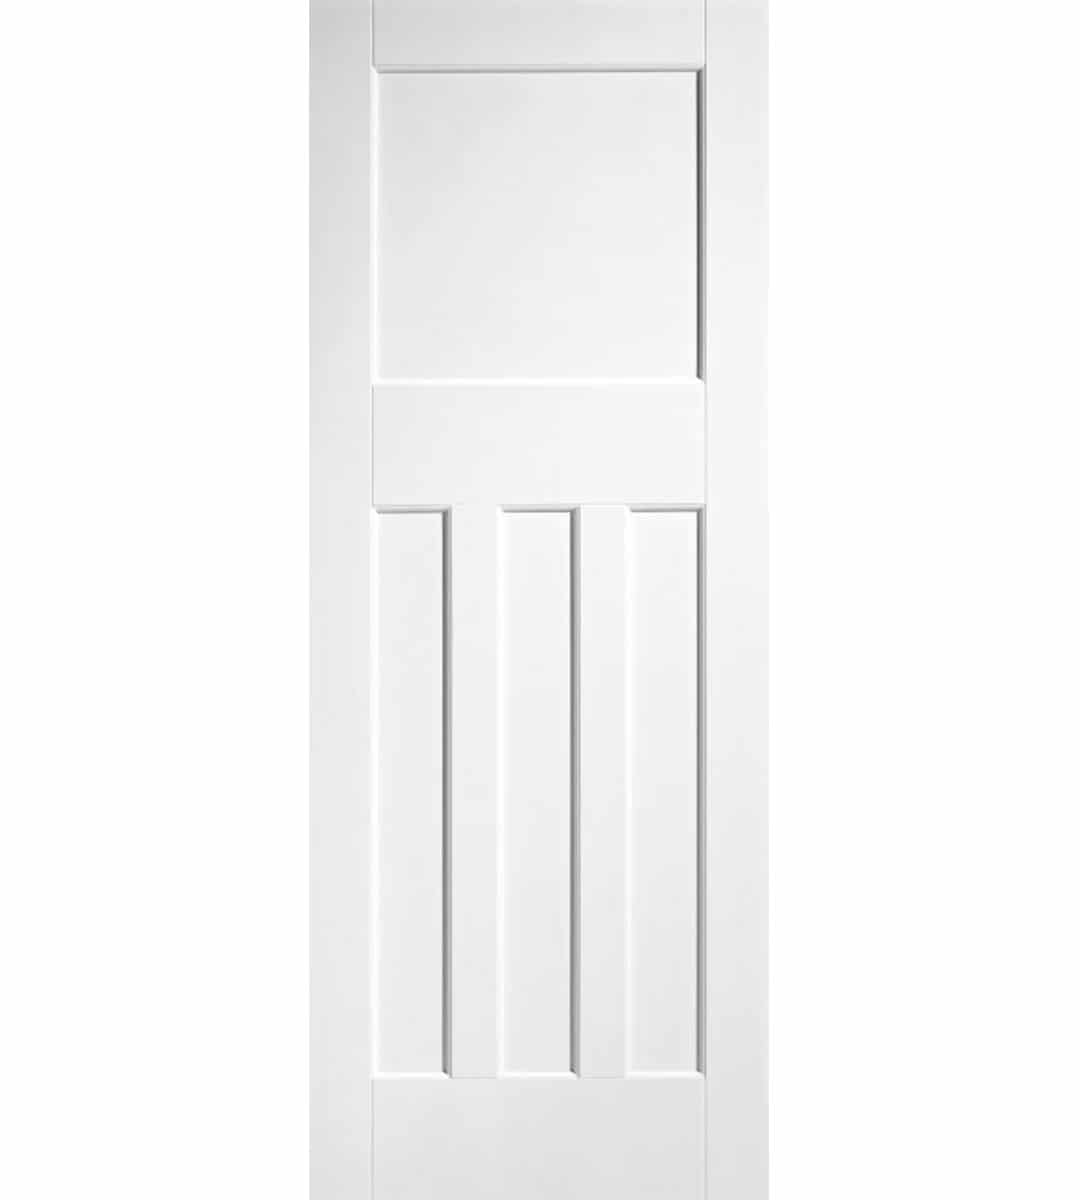 dx-30-internal-white-door